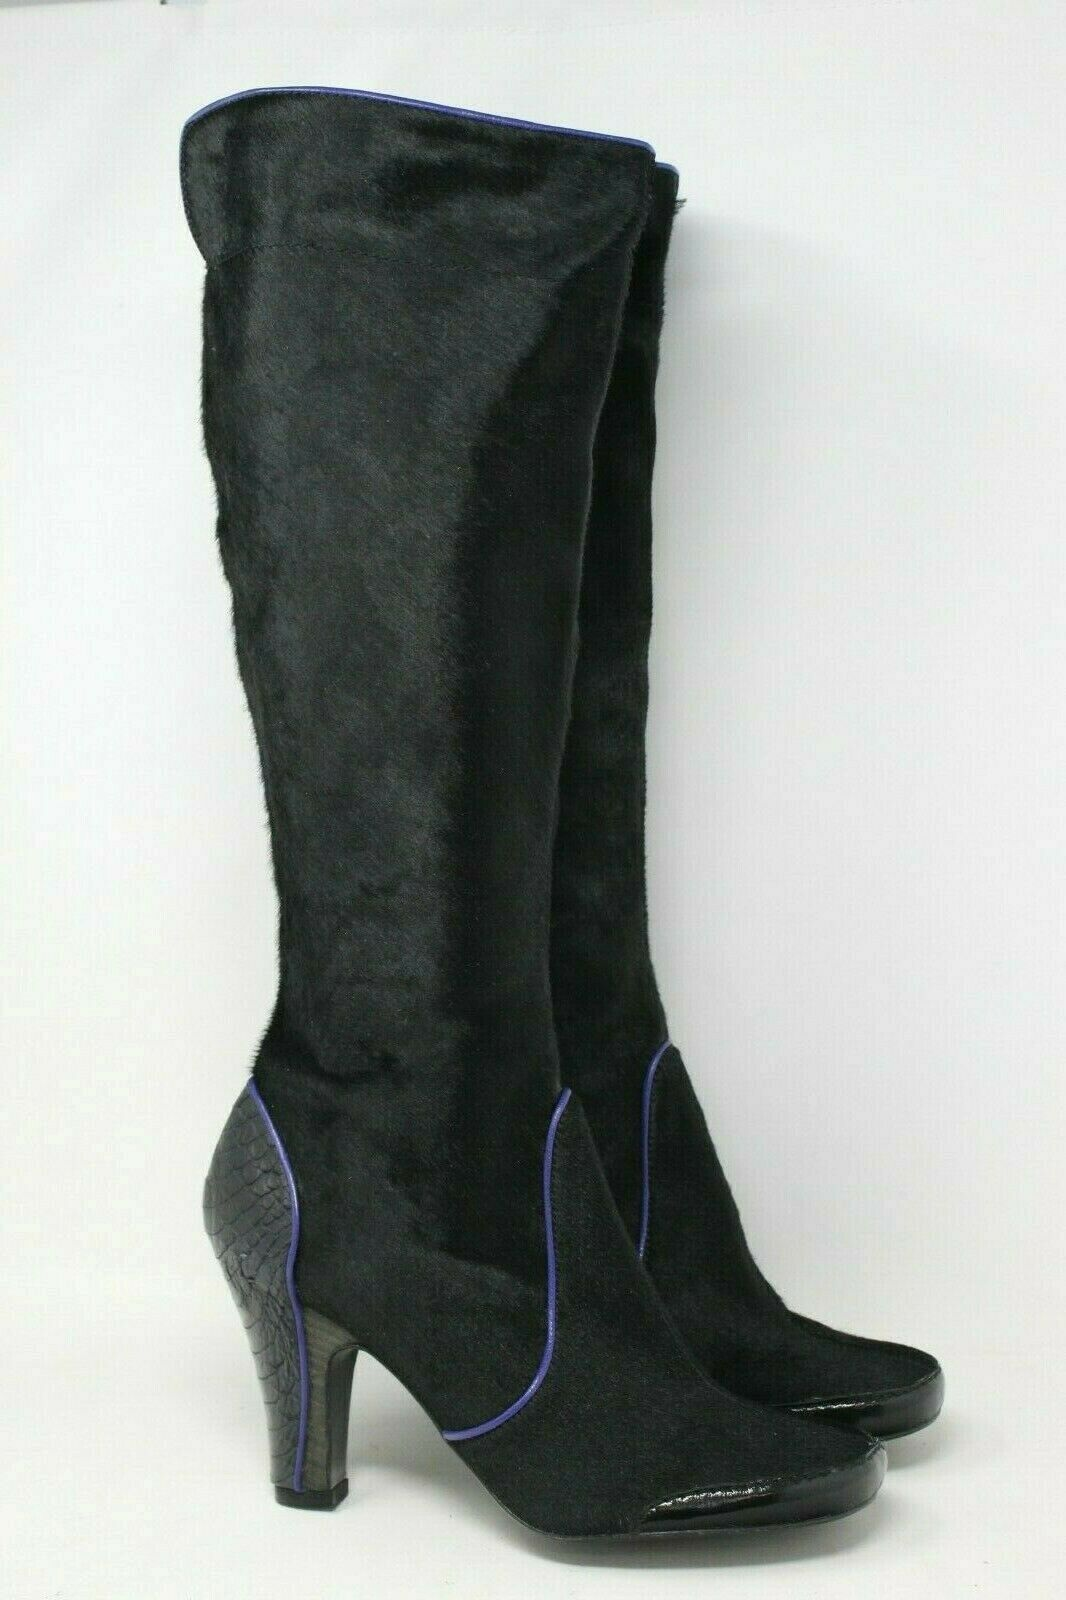 BCBGMAXAZRIA Genuine Calf Hair Tall Boots in Black Size  40 (10) NEW  2